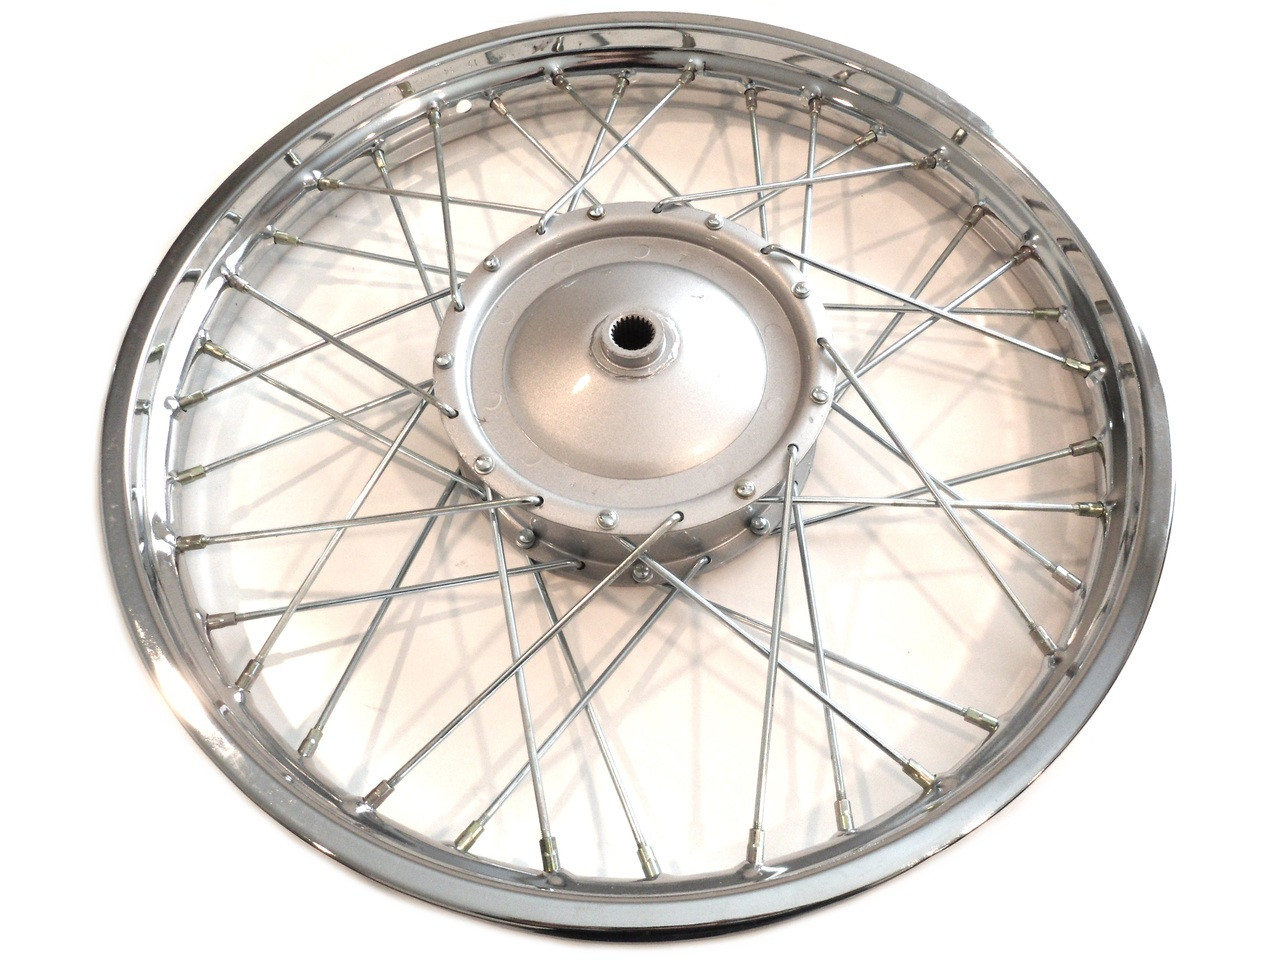 "Original Kinetic 36 Spoke 16 x 2.1"" Rear Wheel - Chrome"